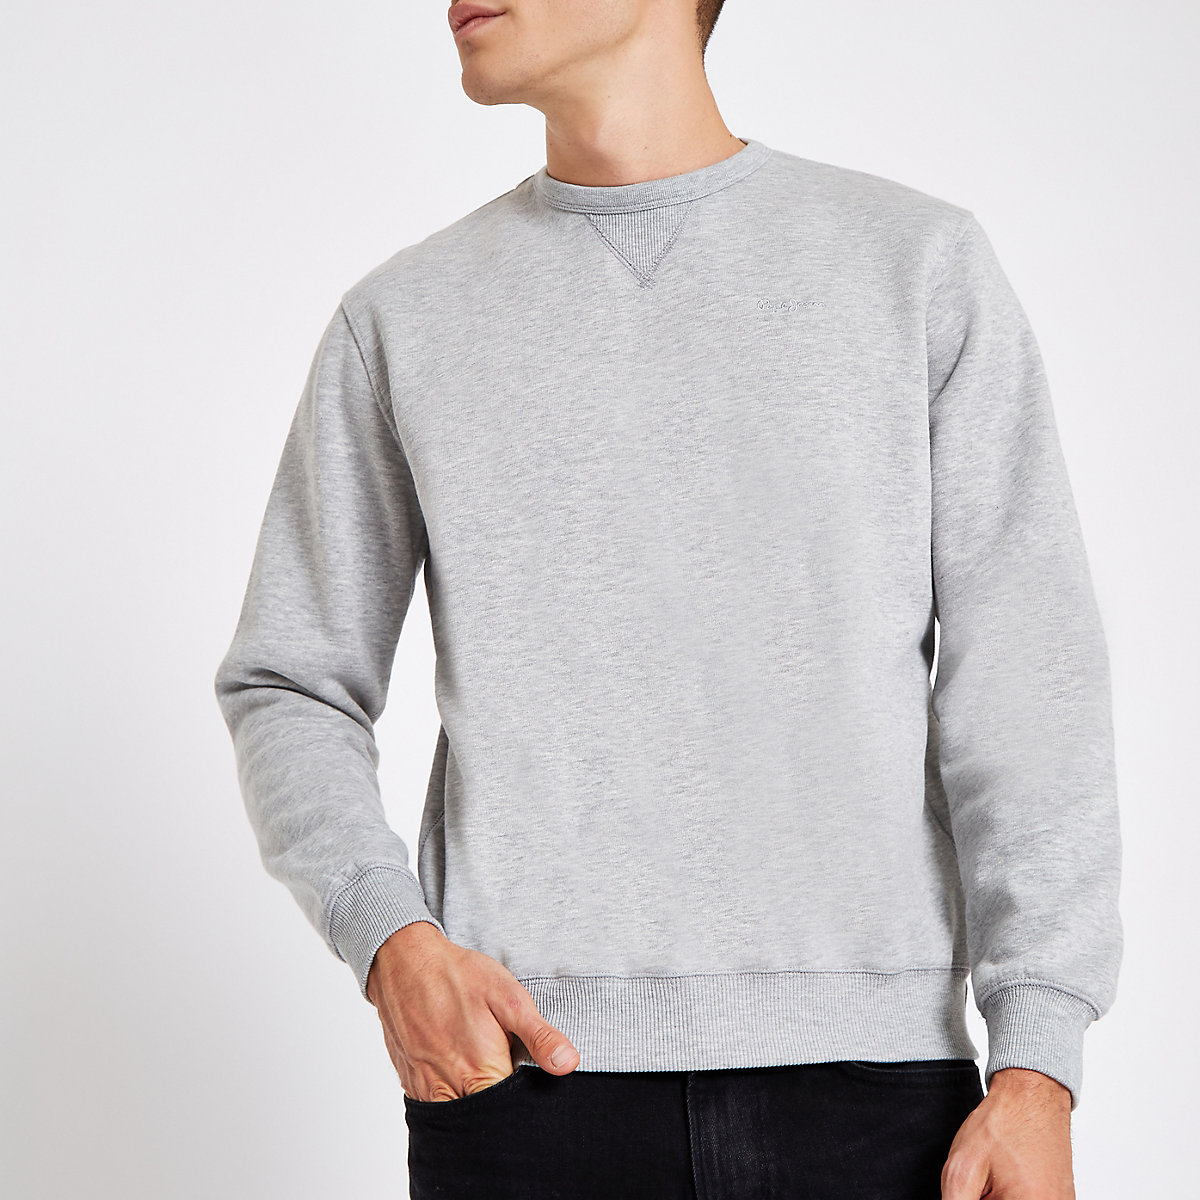 Pepe Jeans crew neck sweater